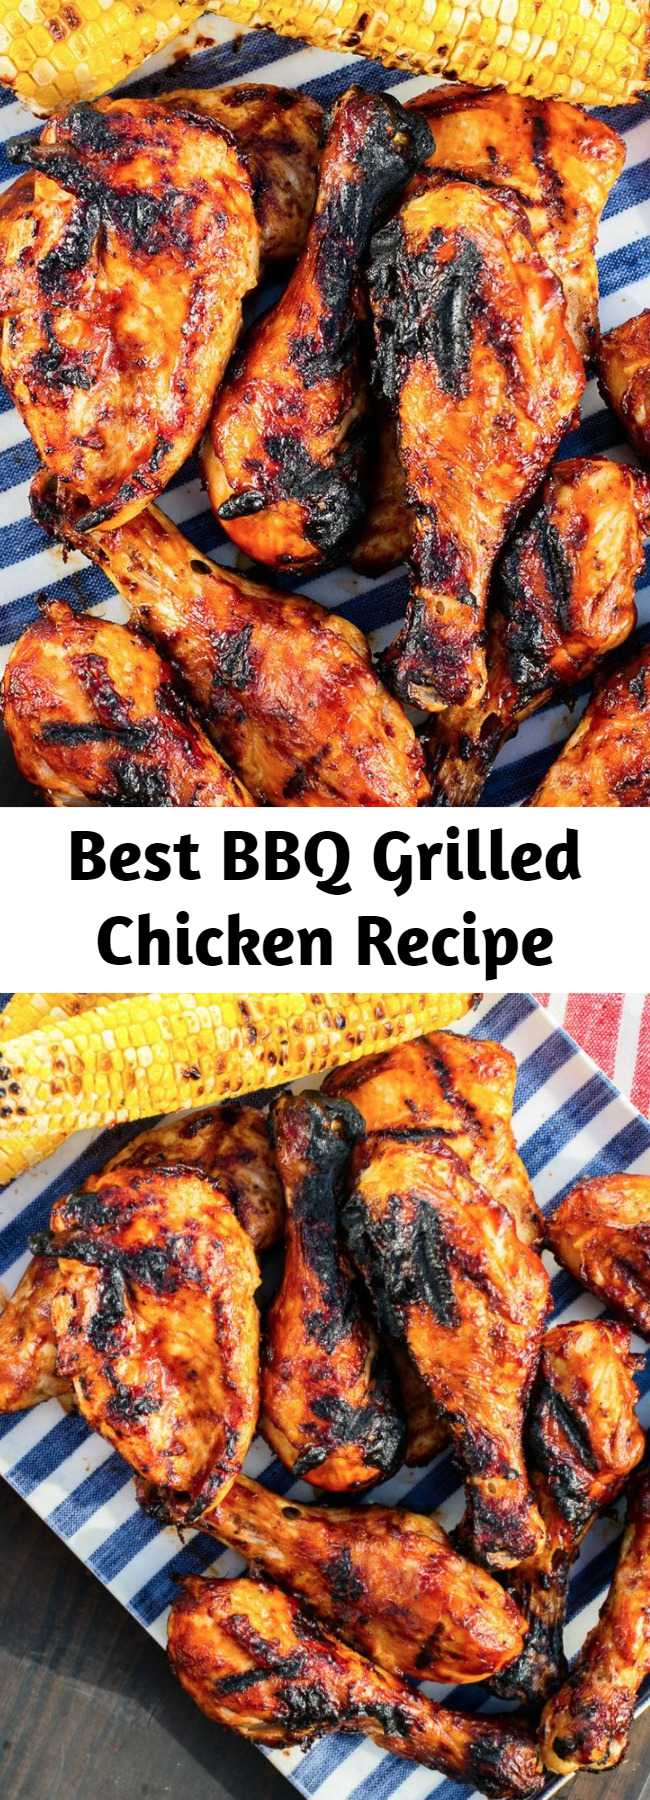 Best BBQ Grilled Chicken Recipe - Grilled chicken breast may not seem like the most exciting meat out there, but this homemade BBQ chicken recipe is affordable, easy, and always crowd-pleasing. Plus, it's healthy!